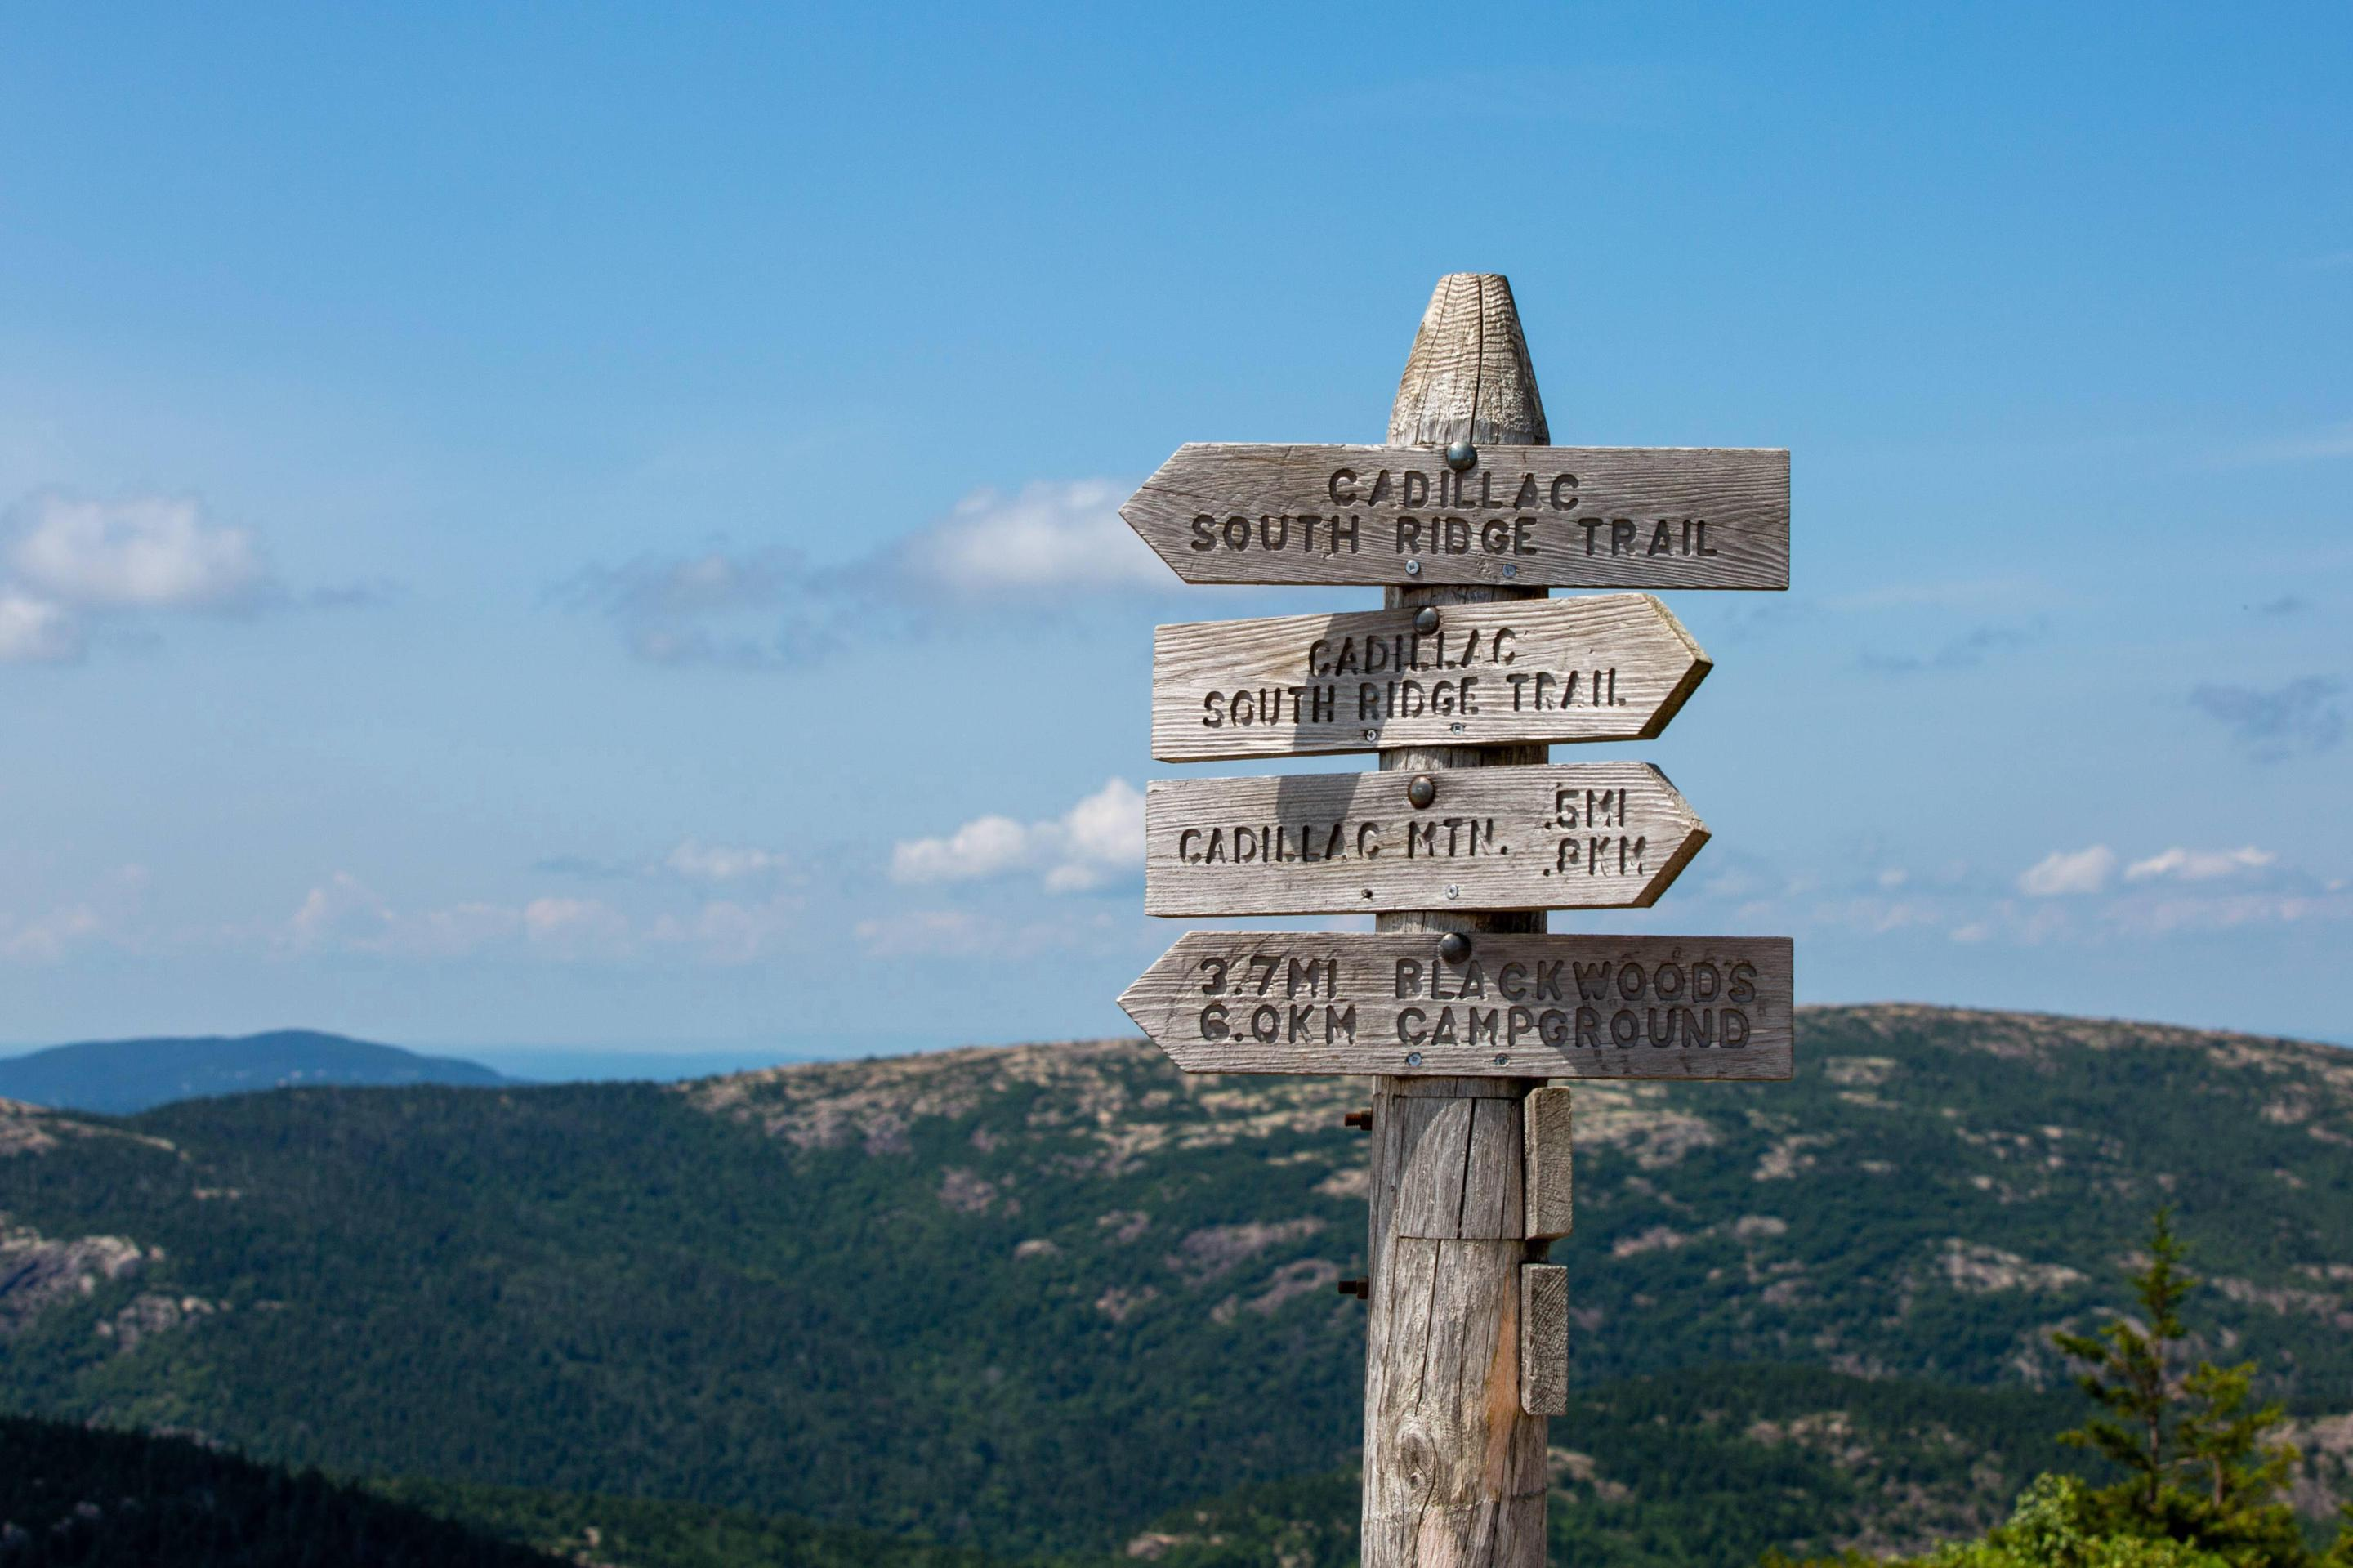 Wood post on mountain top with four signs of trail names and distancesTrail sign post along Cadillac South Ridge Trail